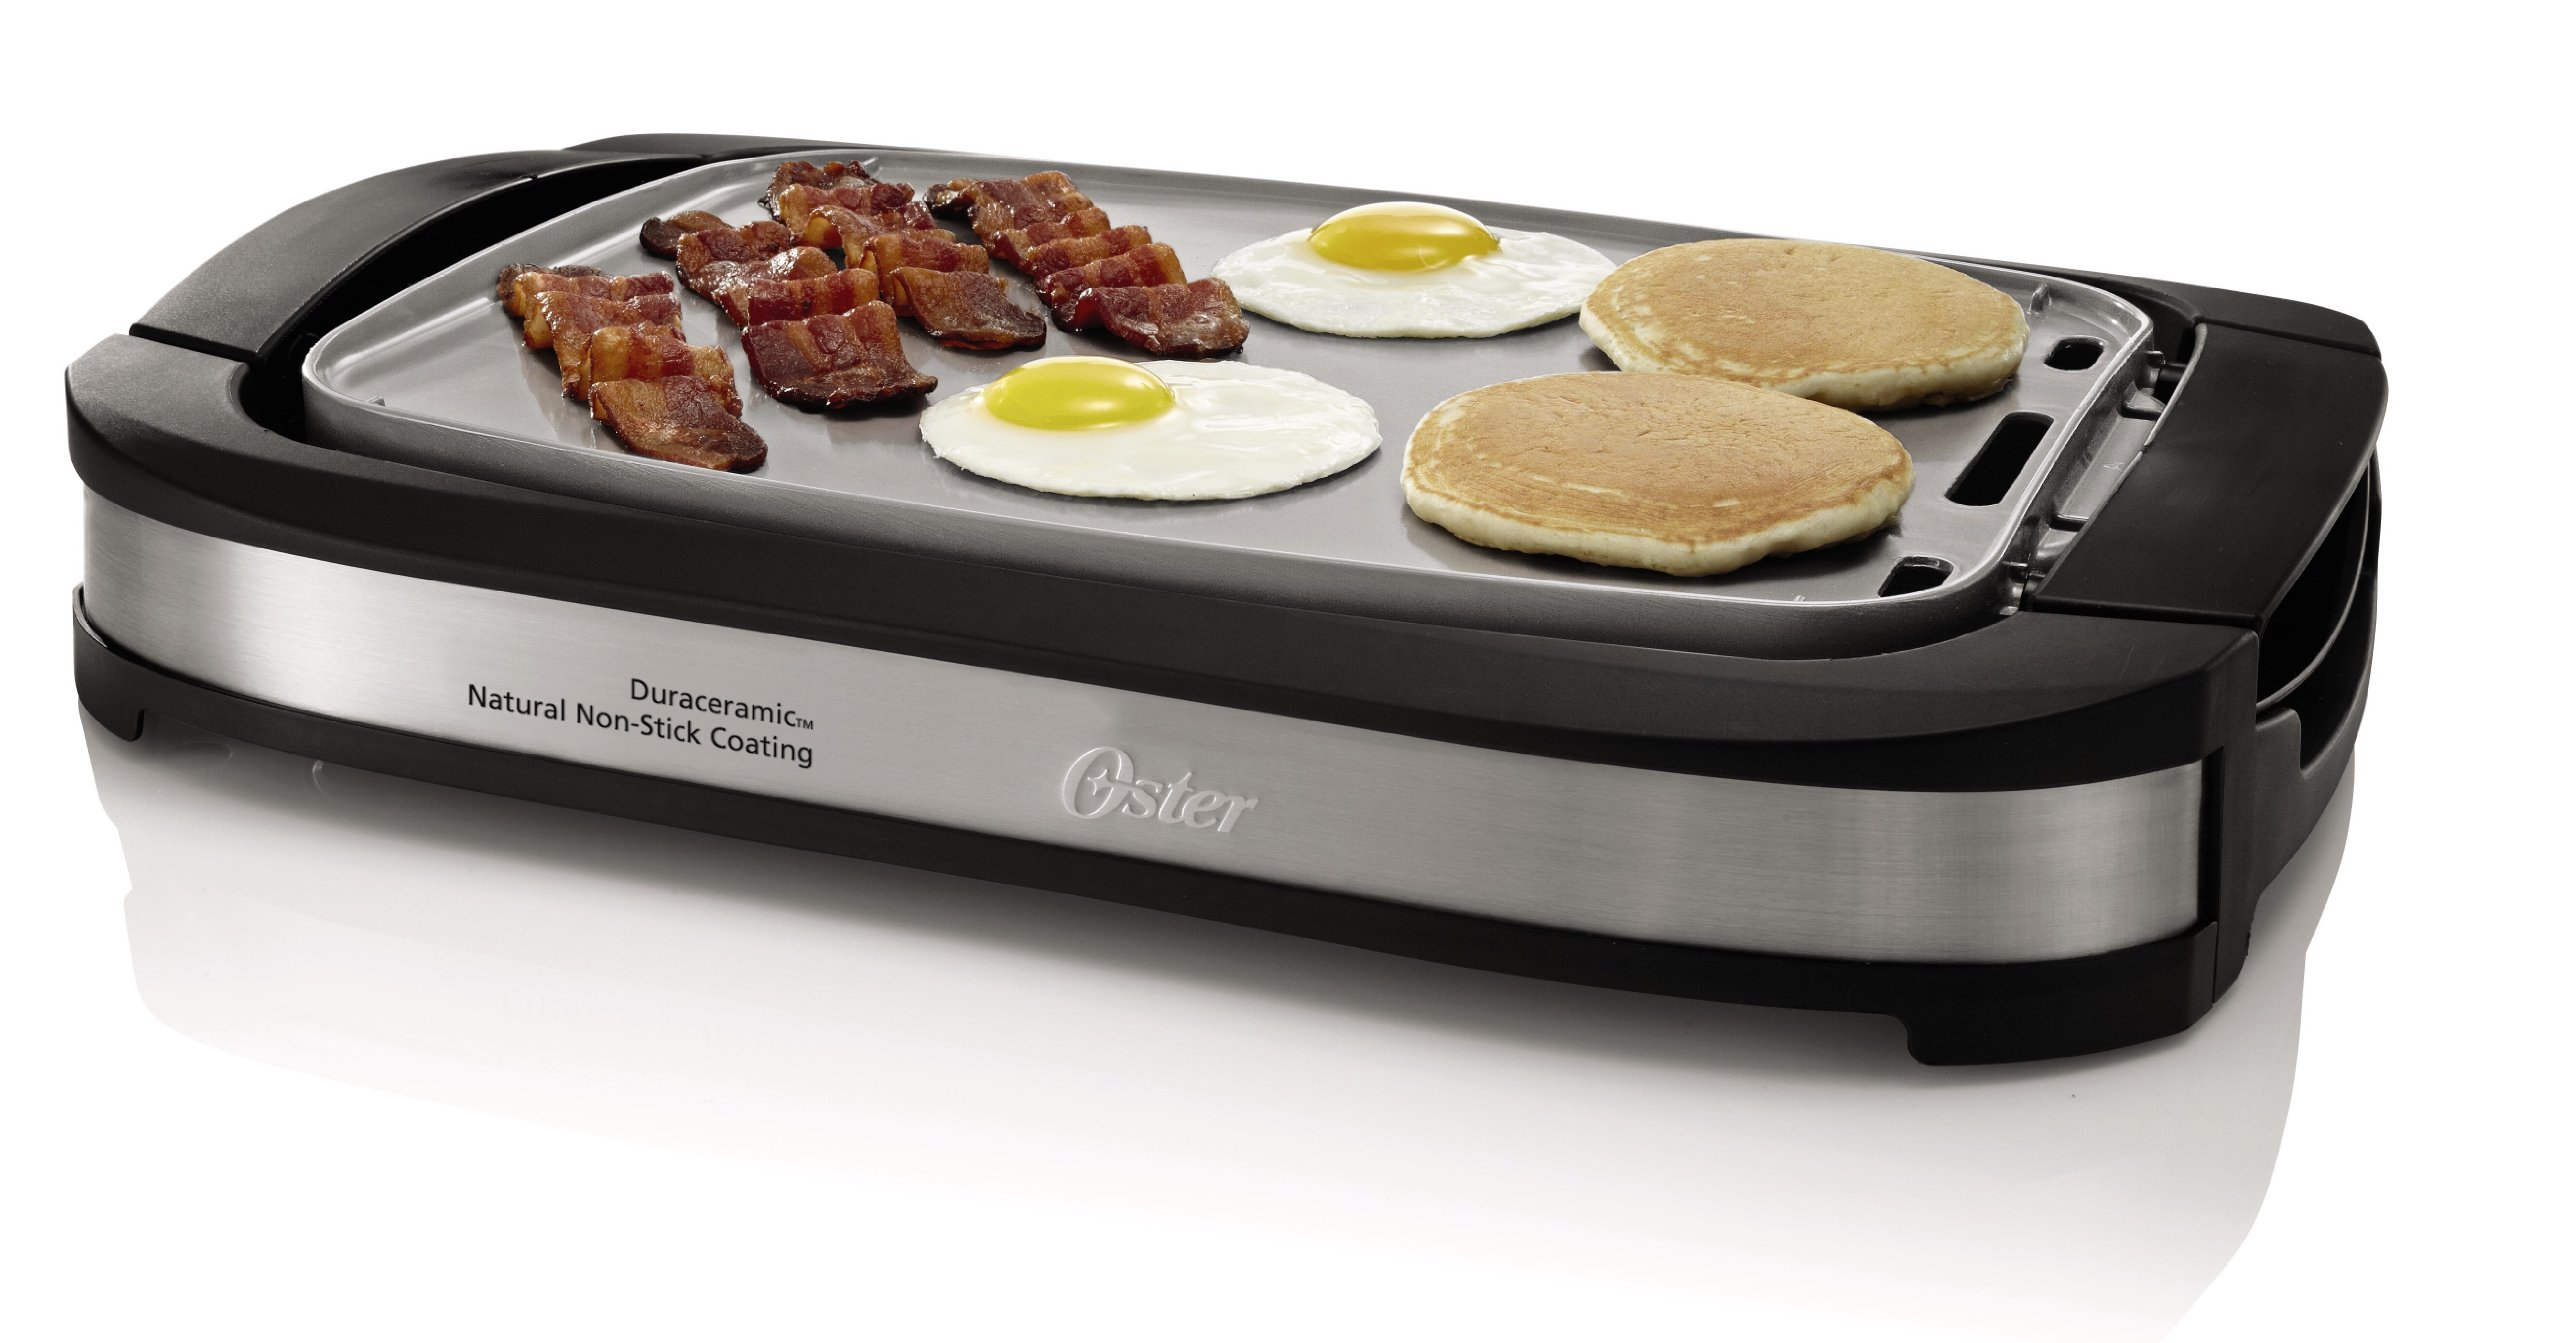 Oster Titanium Infused Duraceramic Griddle With Warming